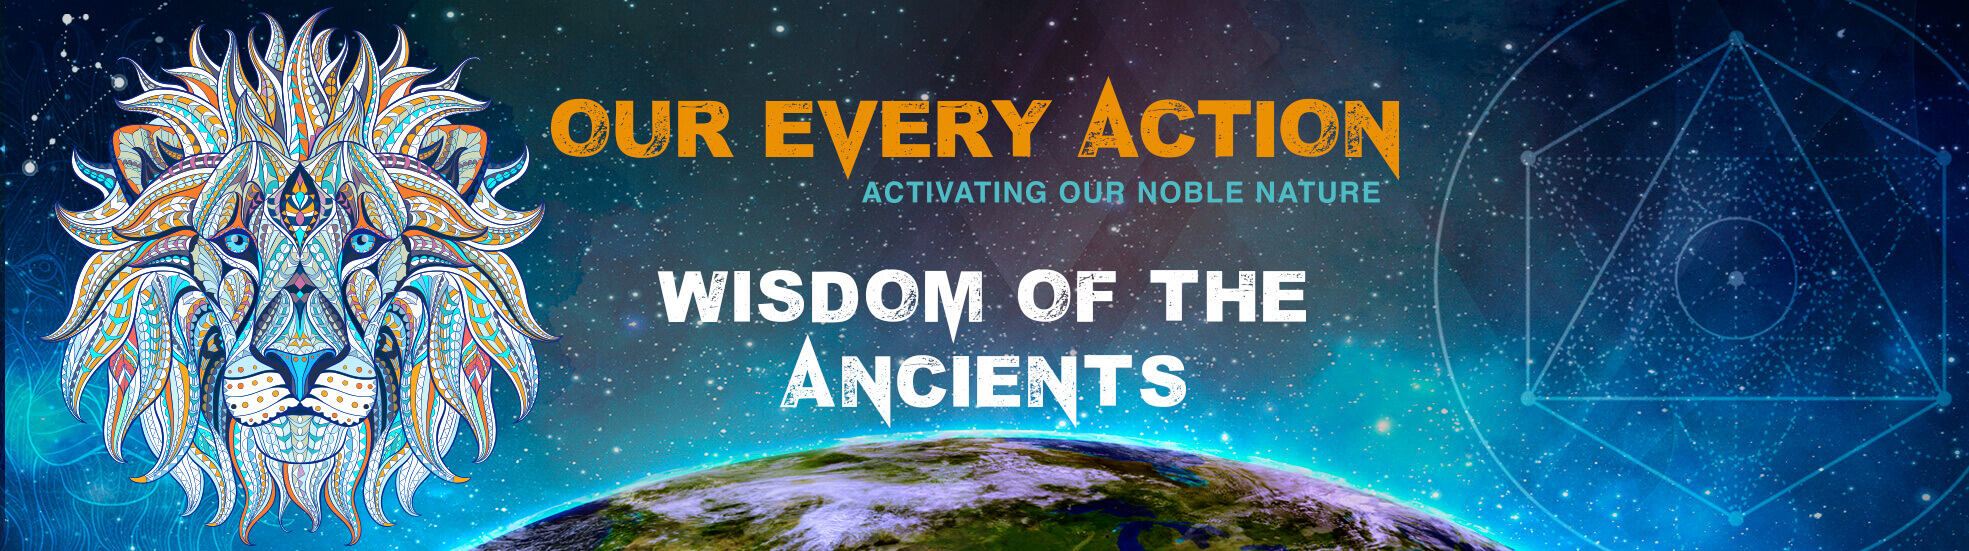 Wisdom of the Ancients Banner